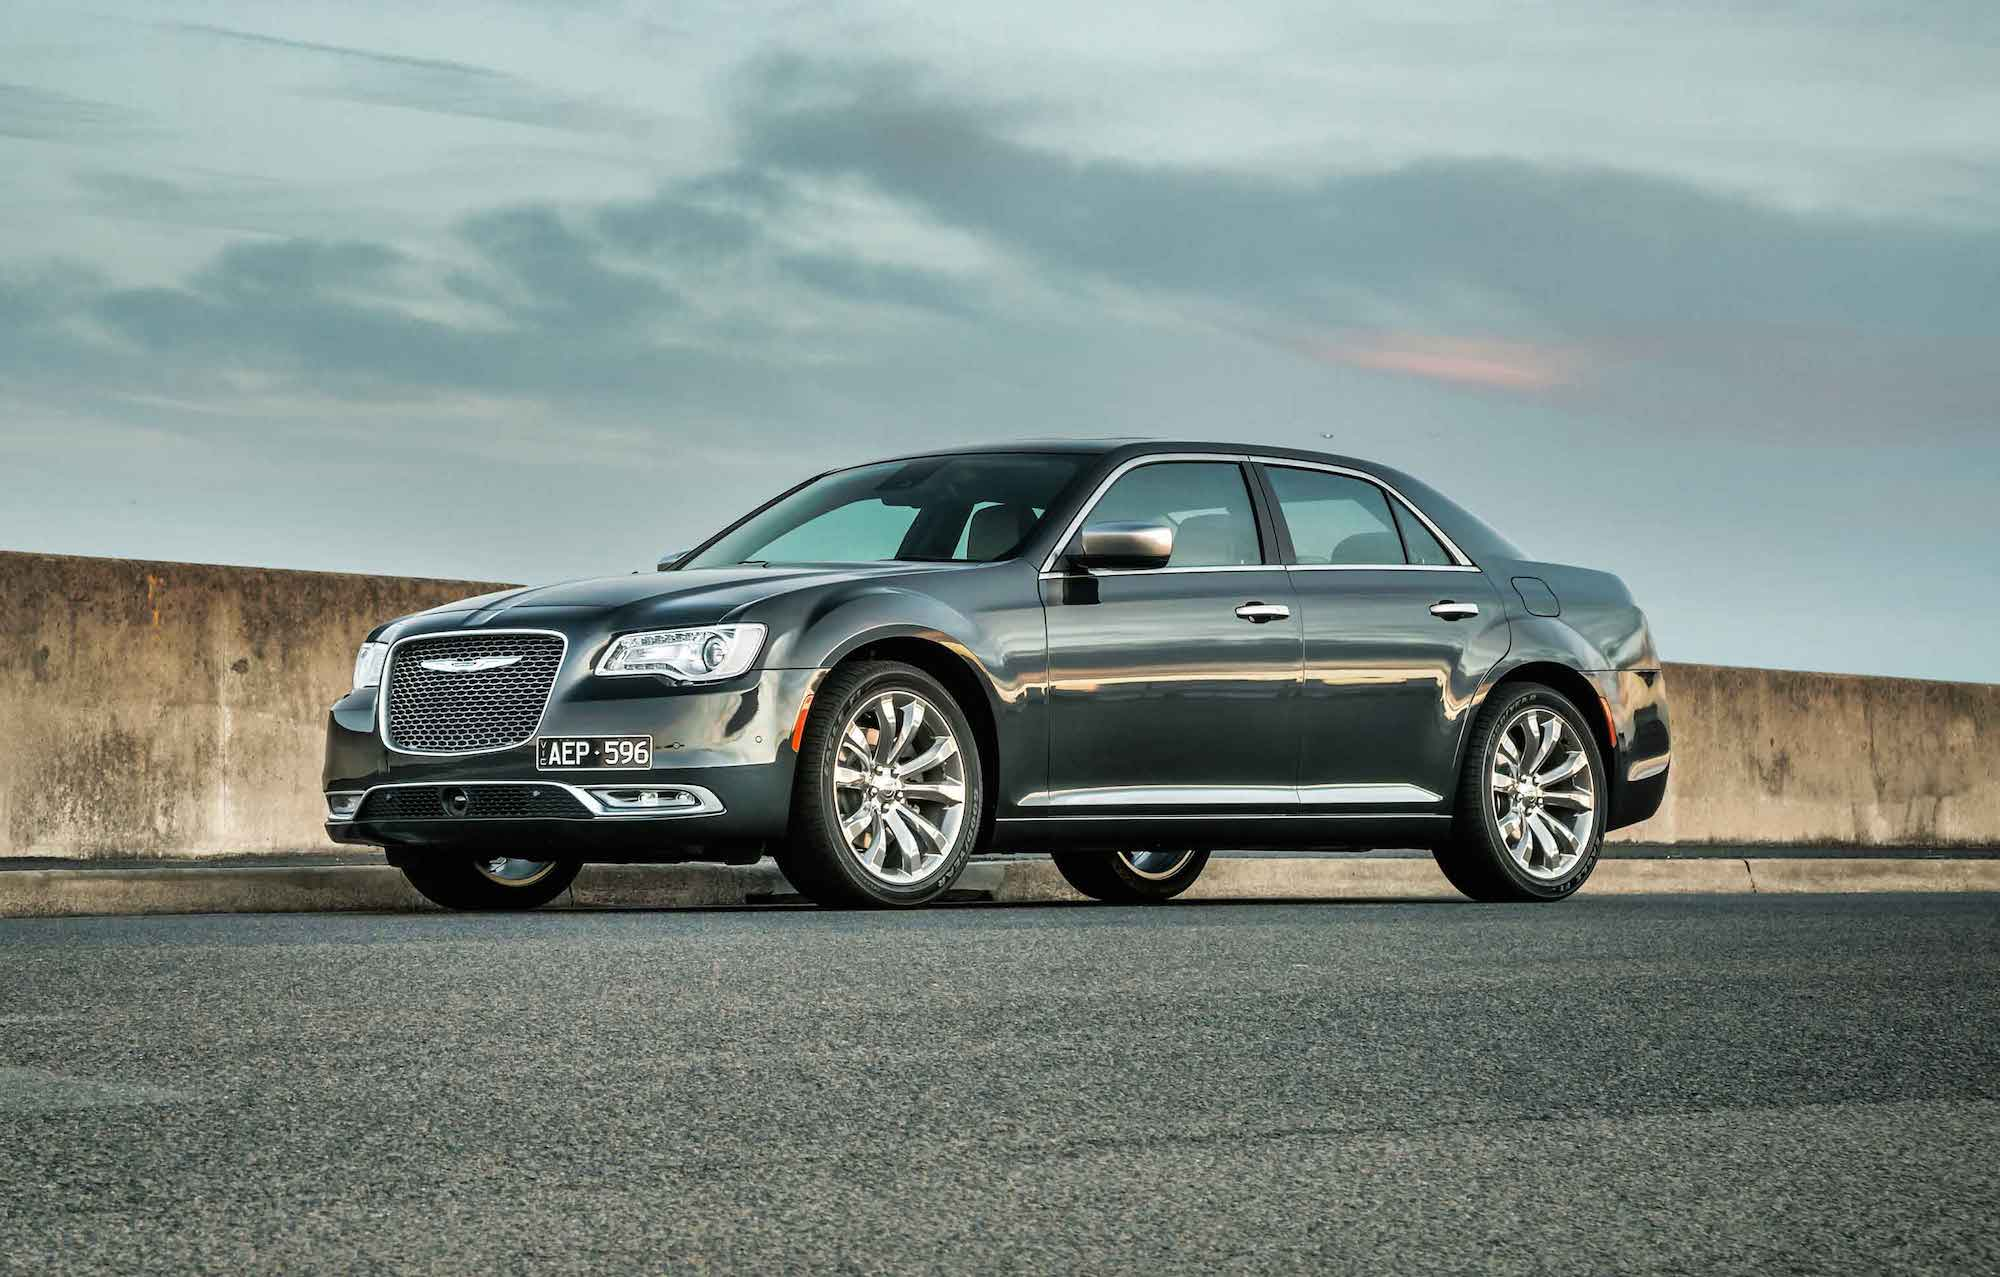 2015 chrysler 300c review photos caradvice for Chrysler 300c